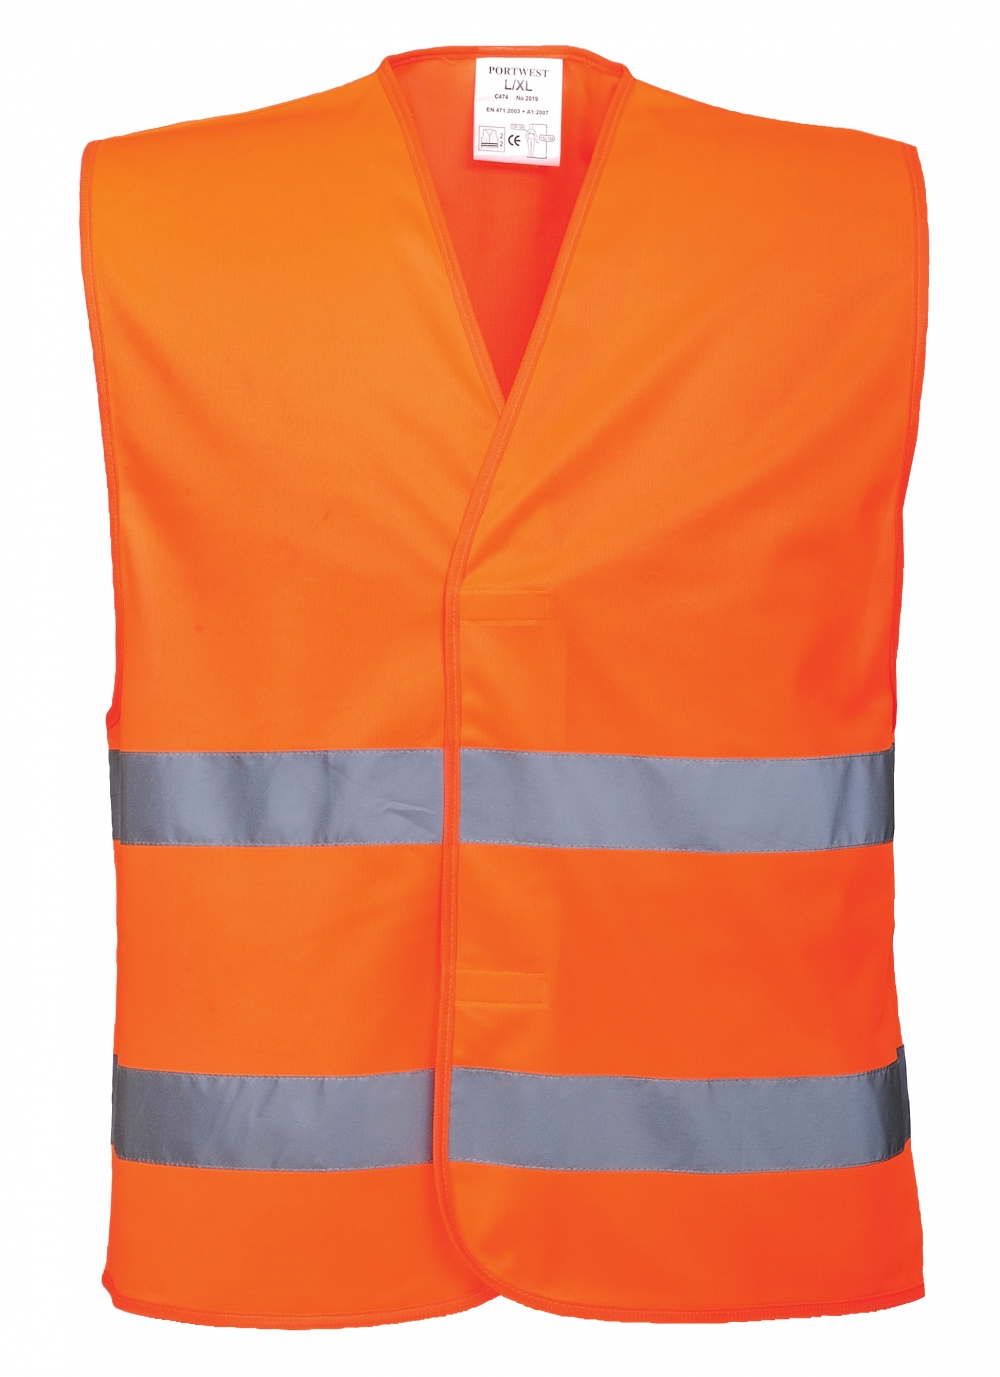 concert vests at cousin's concert attire At Cousin's Concert Attire, our formal vests are constructed with your concert formal wear needs in mind. We proudly carry a selection of sharp, well-fitting concert band vests which are all listed at incredibly affordable prices.